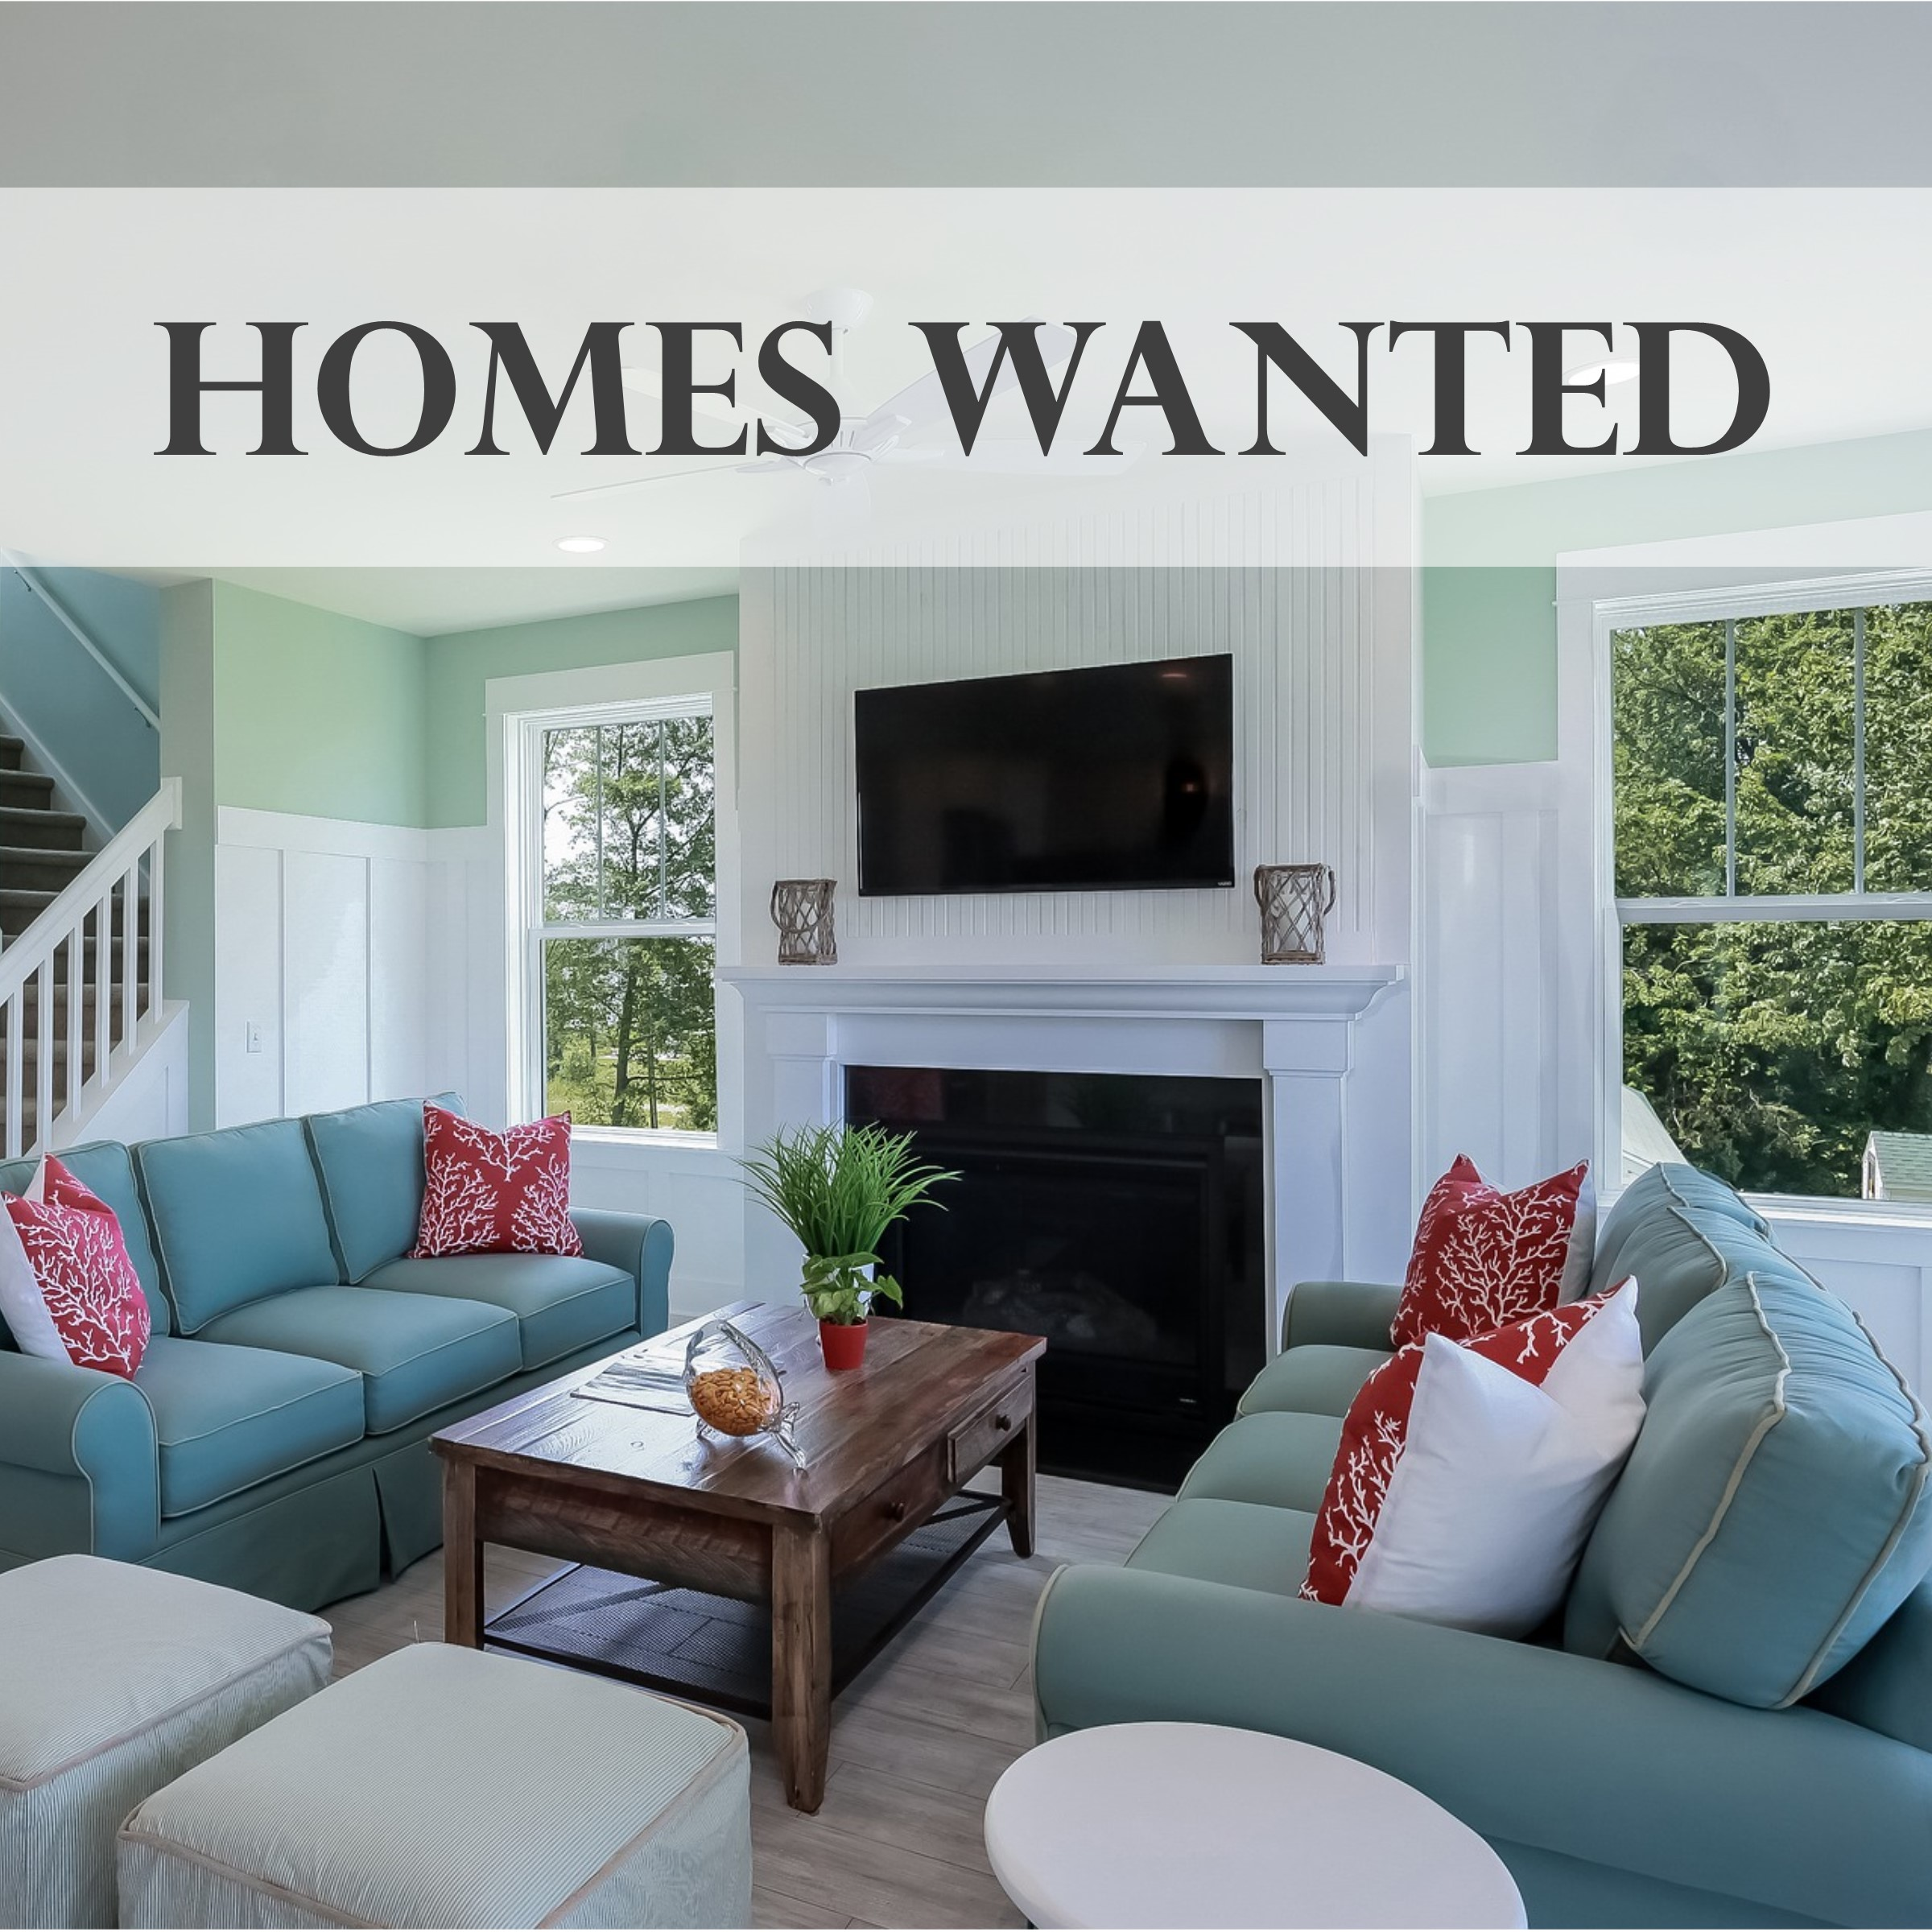 Maine Homes Wanted - maine homes for sale, maine real estate, maine realtors, fontaine family, fontaine family team